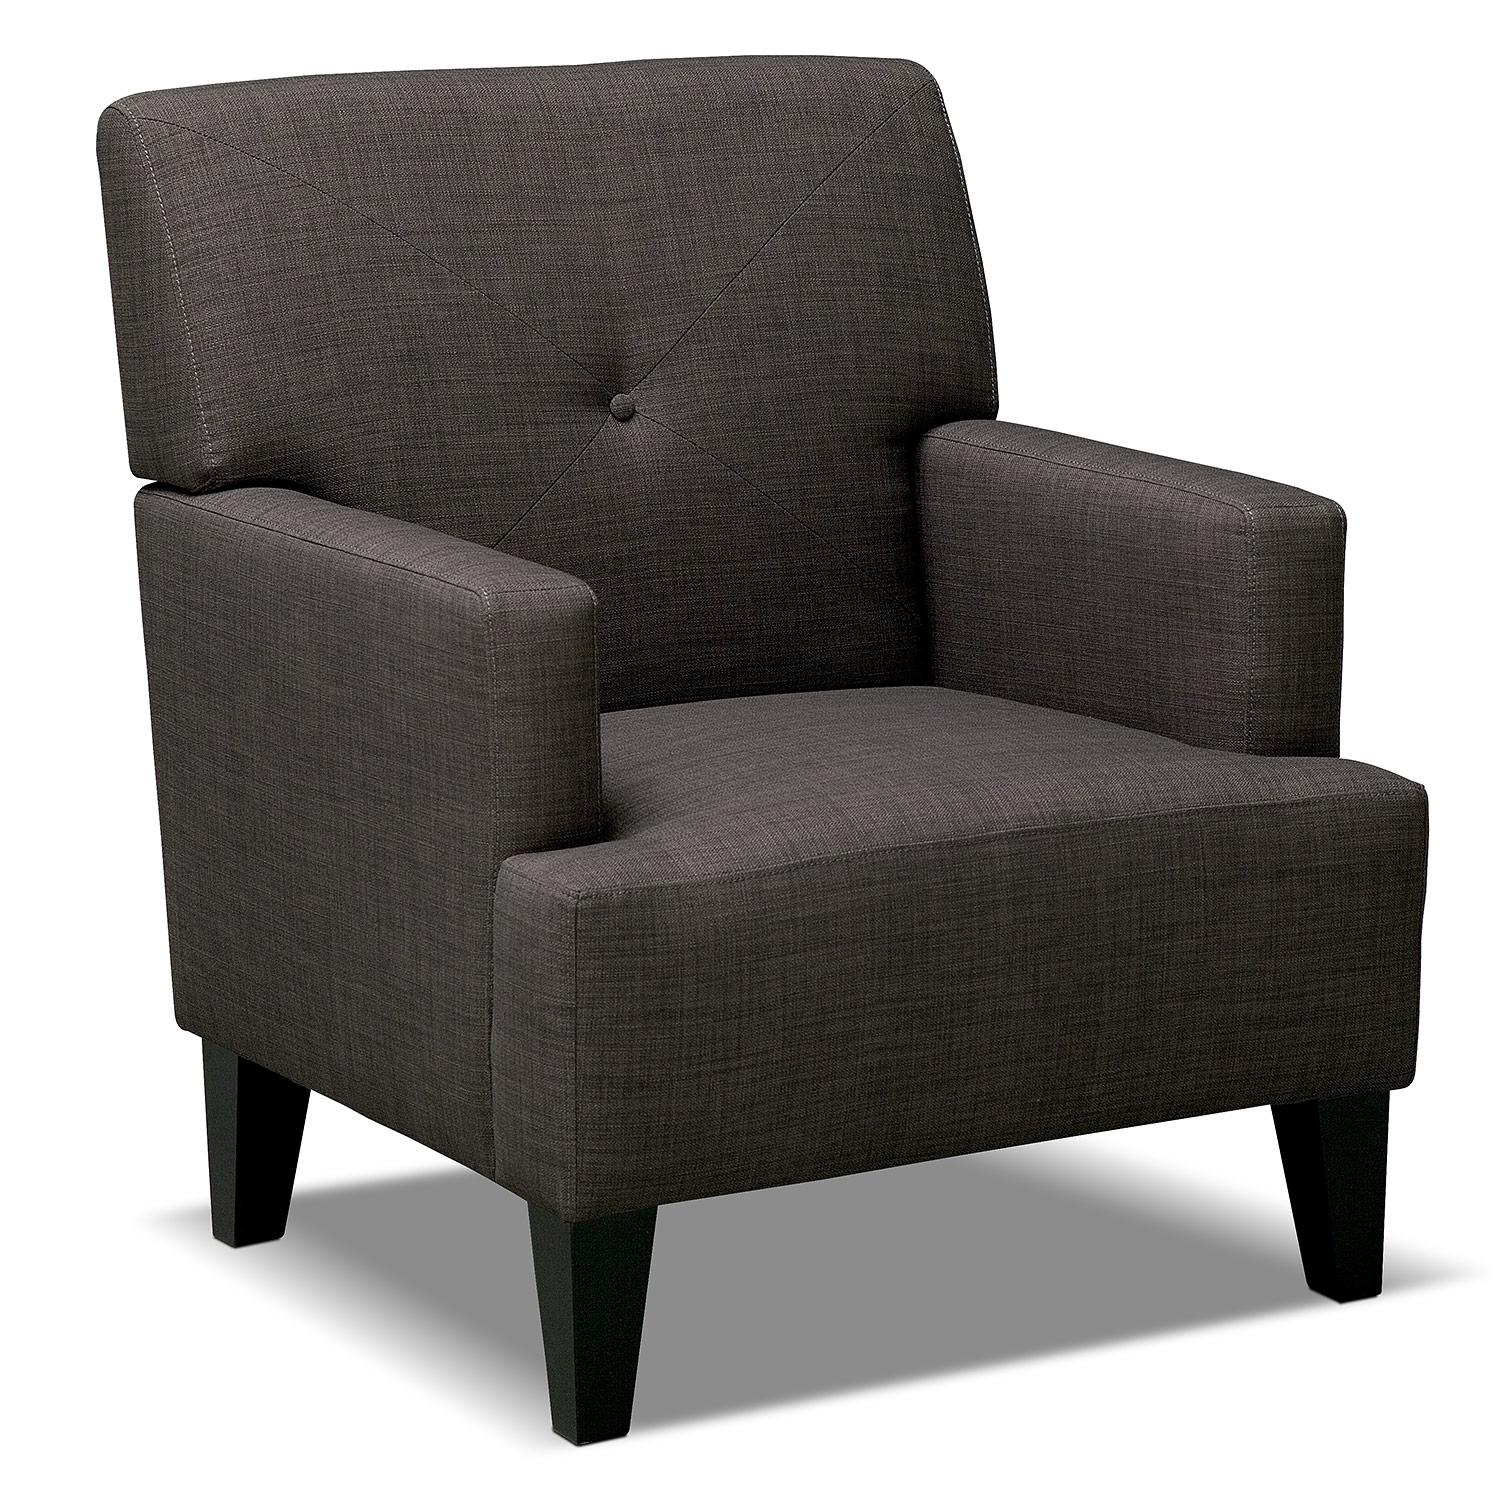 Inspiring accent chair for home furniture ideas with accent chairs with arms and accent chairs for living room